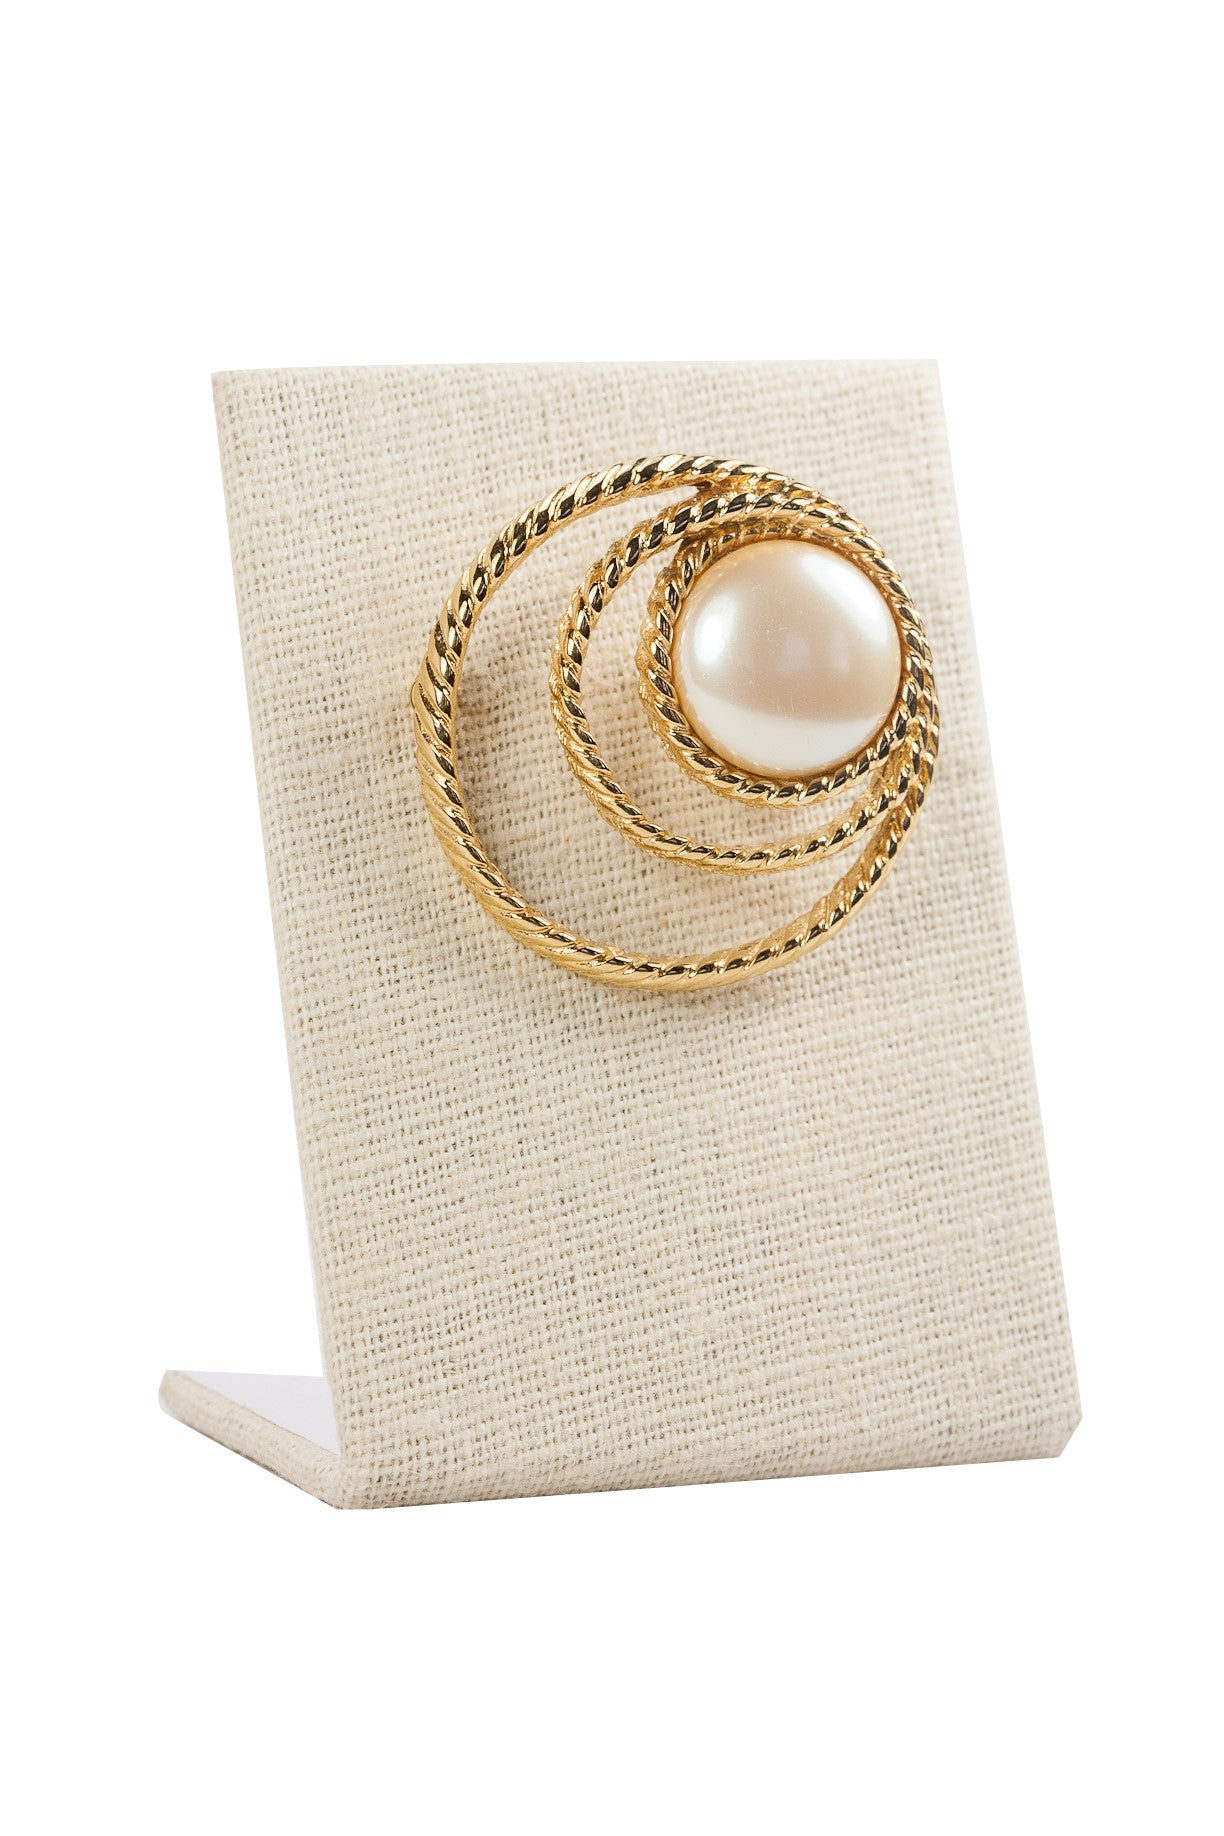 80's__Monet__Pearl Wrapped Brooch